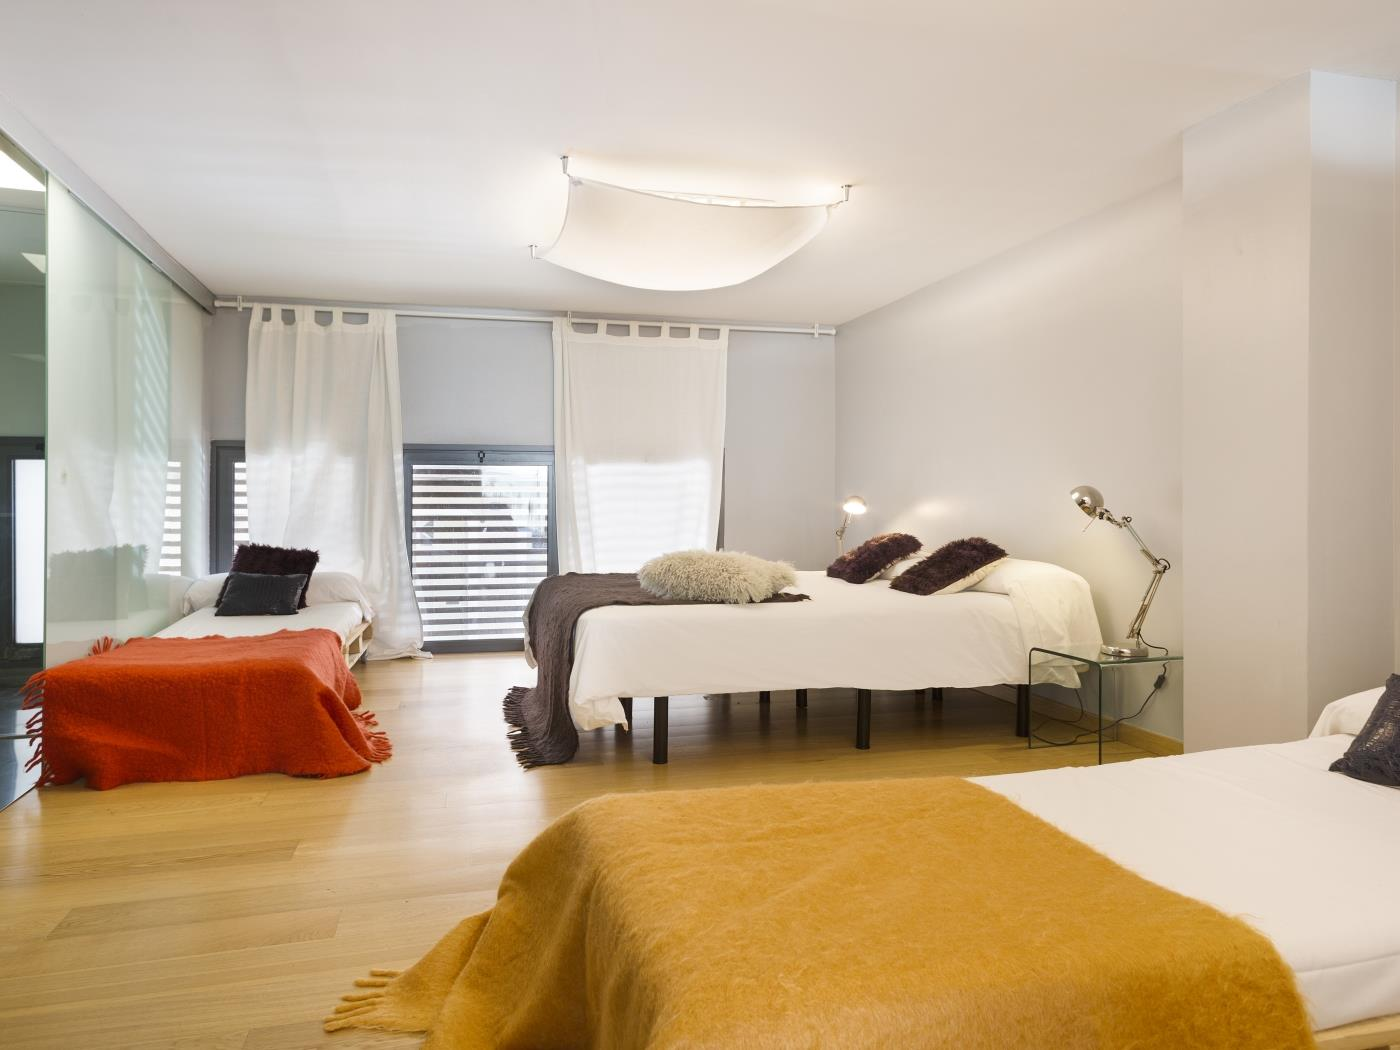 Terrace and pool apartment near the Barcelona centre - My Space Barcelona Aпартаменты